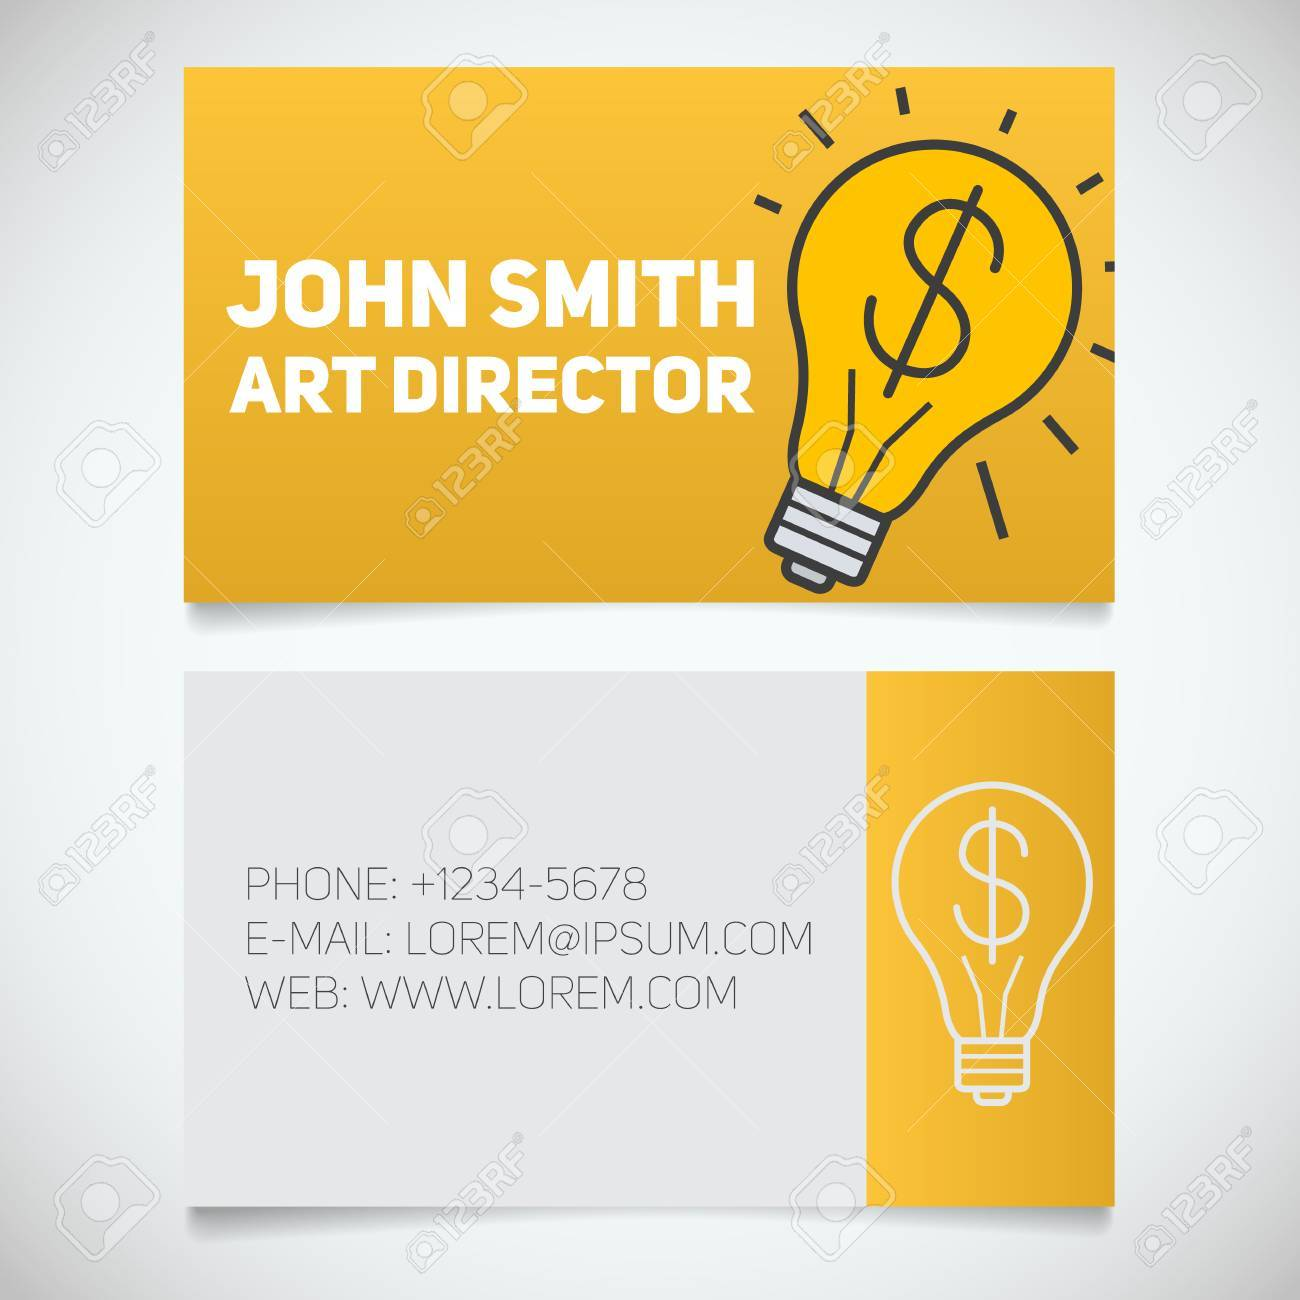 Business Card Print Template With Startup Logo. Creative Director ...